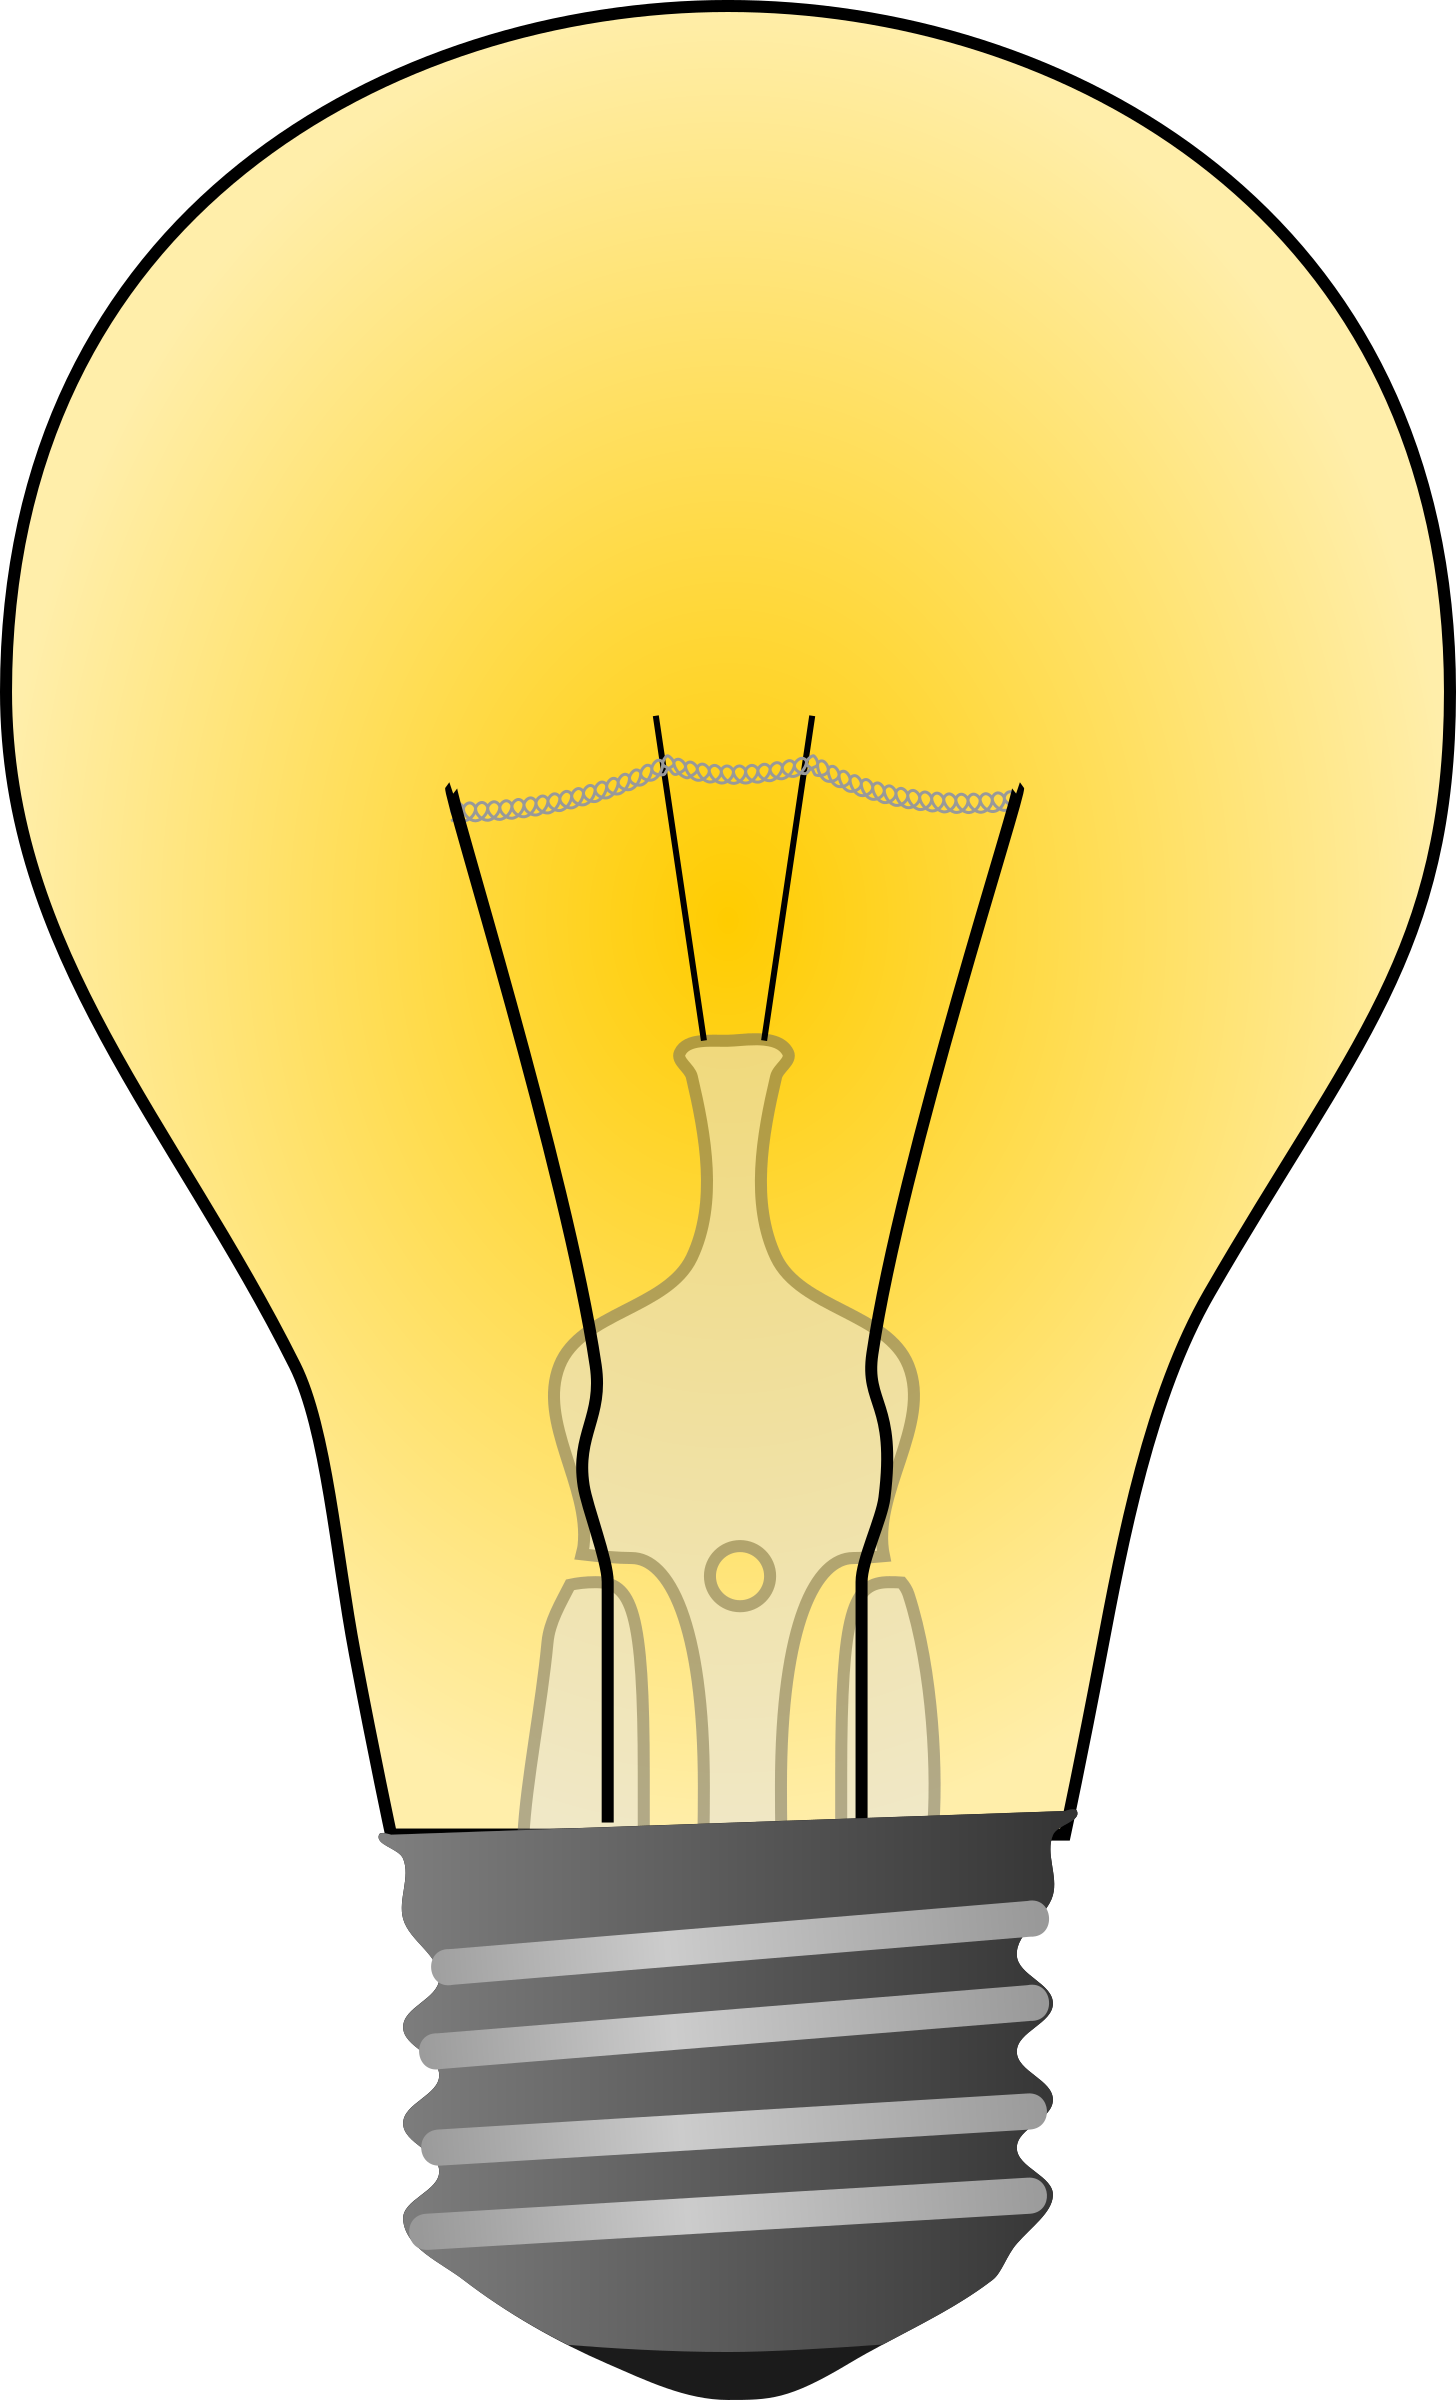 Pictures Of Light Bulbs Clipart | Free download best Pictures Of ... for Lamp Animation Png  299kxo